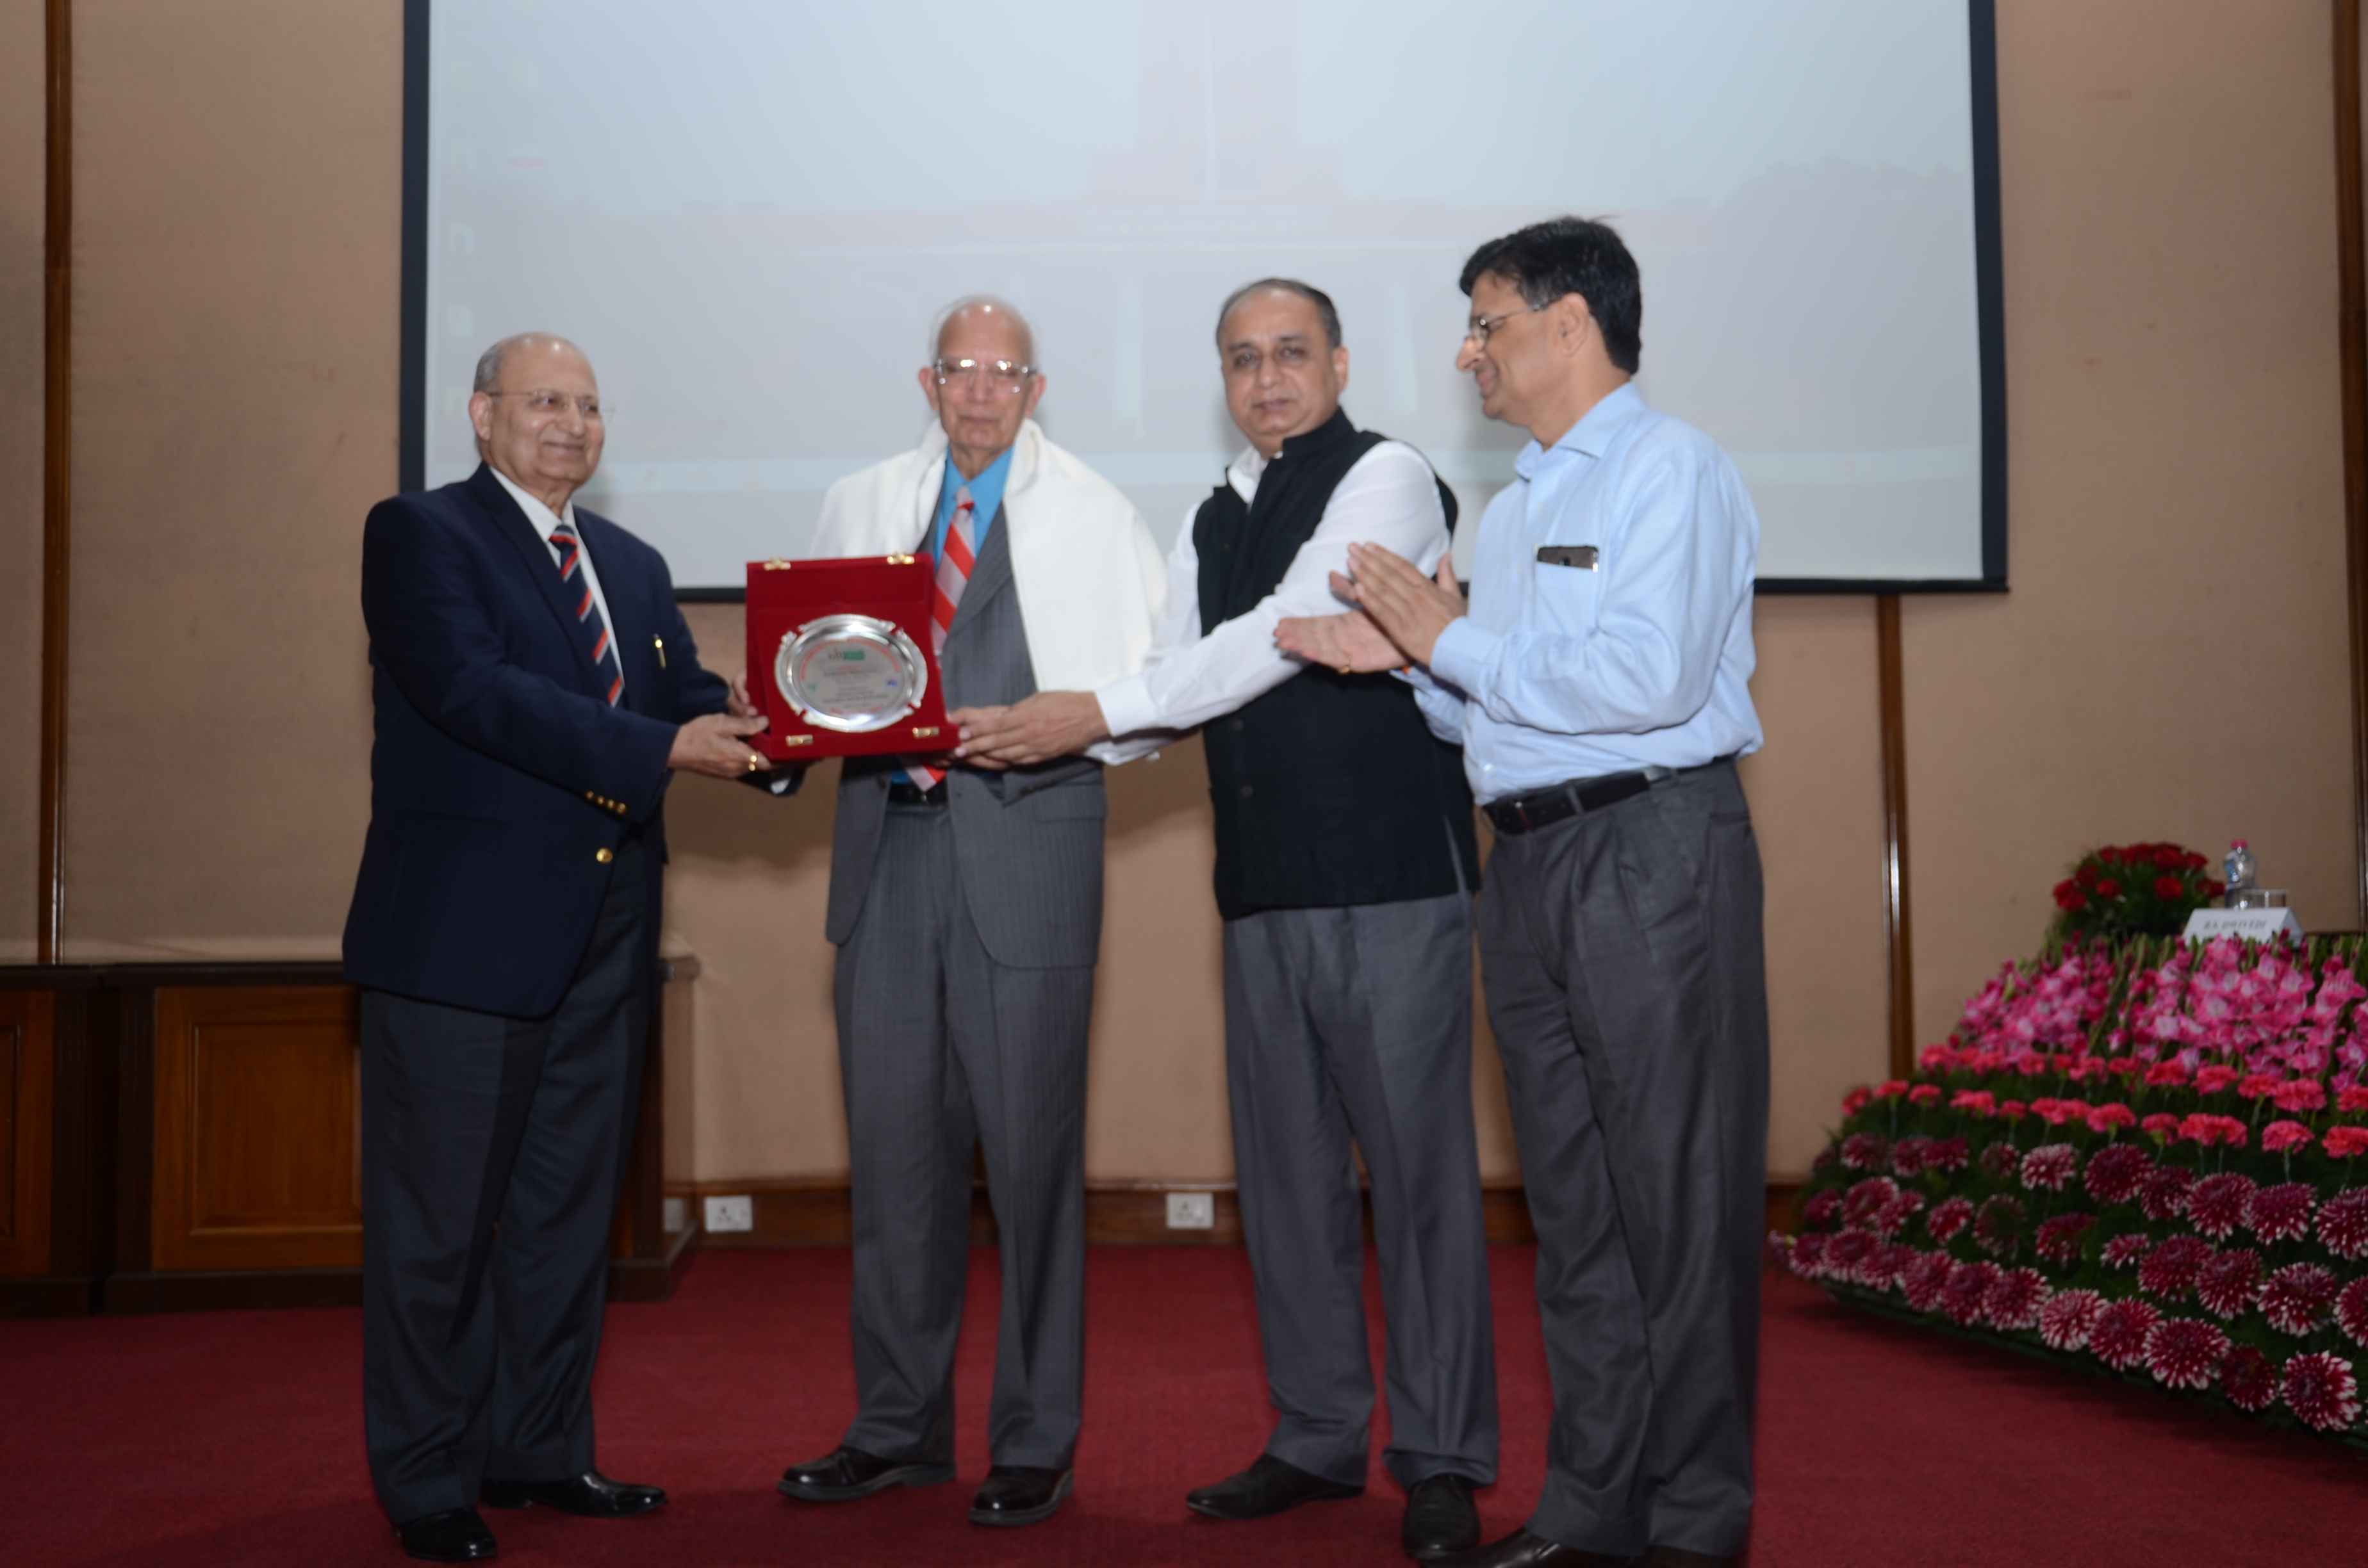 Dr. R.S. Paroda, Chairman, TAAS and former Secretary, DARE and DG, ICAR, Dr A.K. Singh, DDG (Ext)& Director-IARI and Dr. B.S. Dwivedi honoring the Speaker Prof Rattan Lal on 12.3.18 at IARI